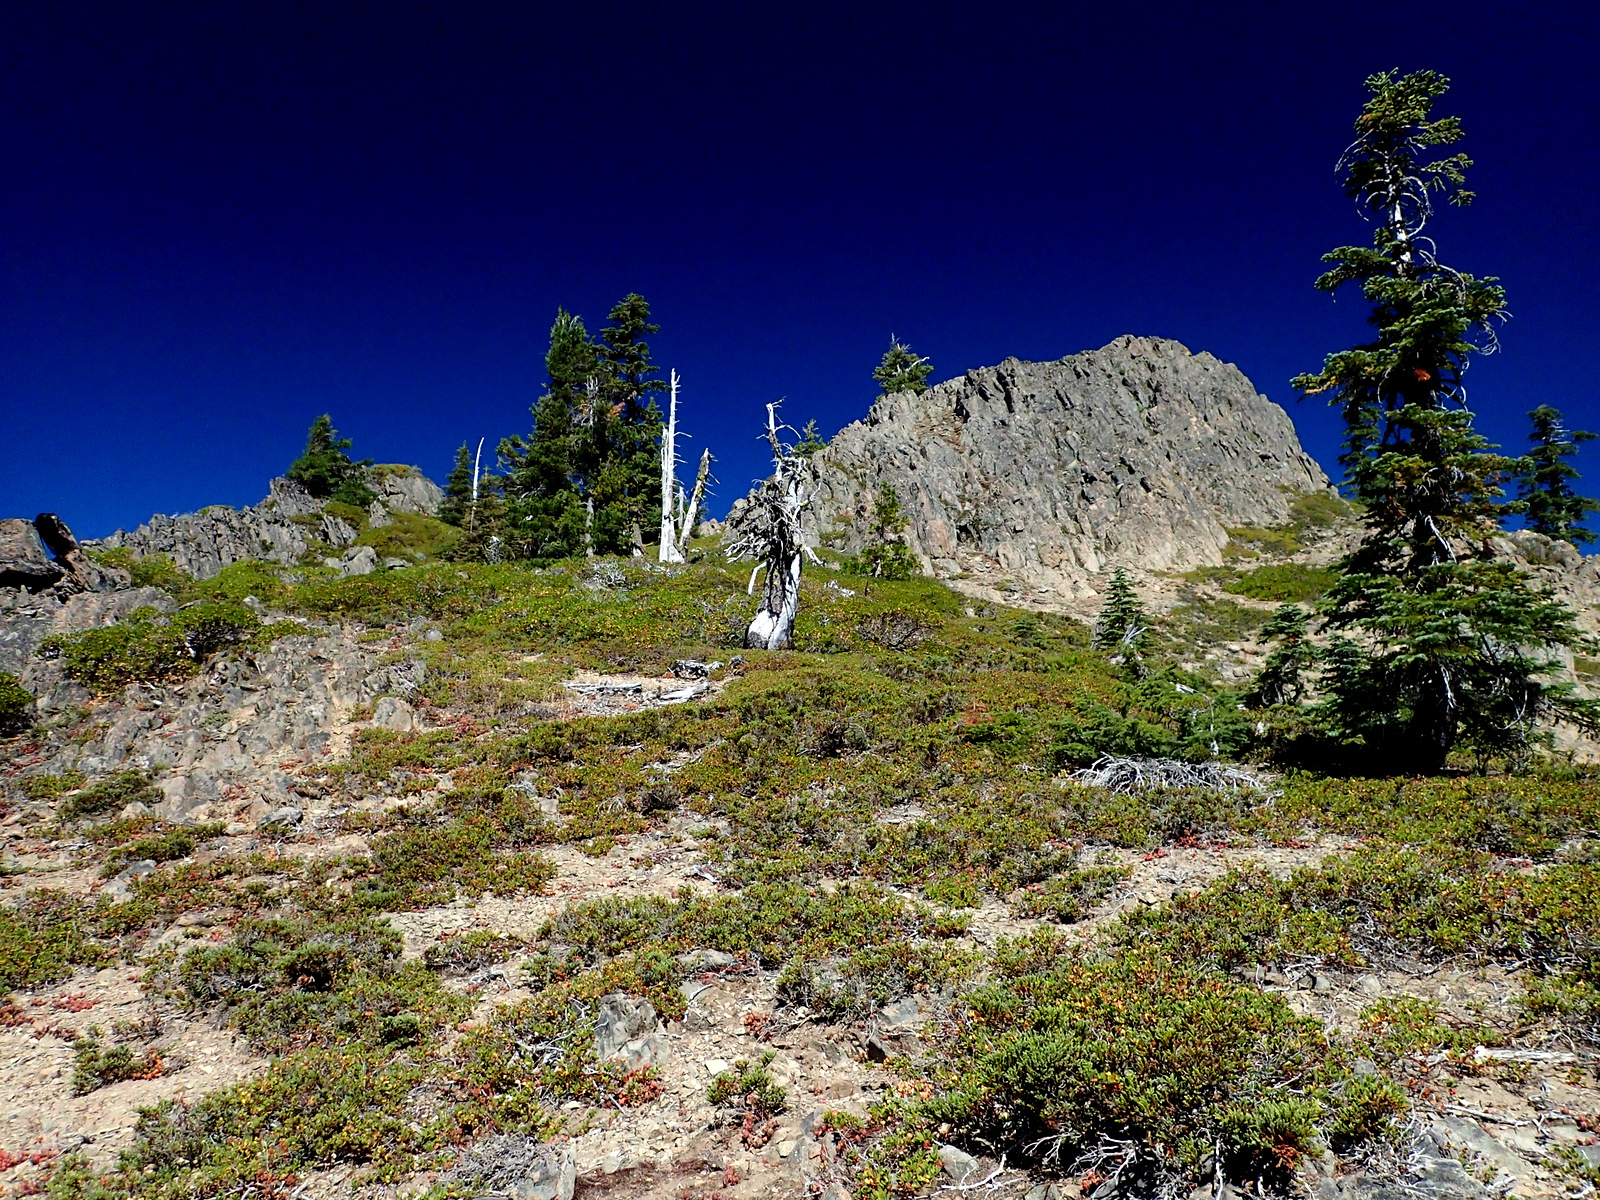 Highrock Mountain Rogue-Umpqua Divide Wilderness Oregon